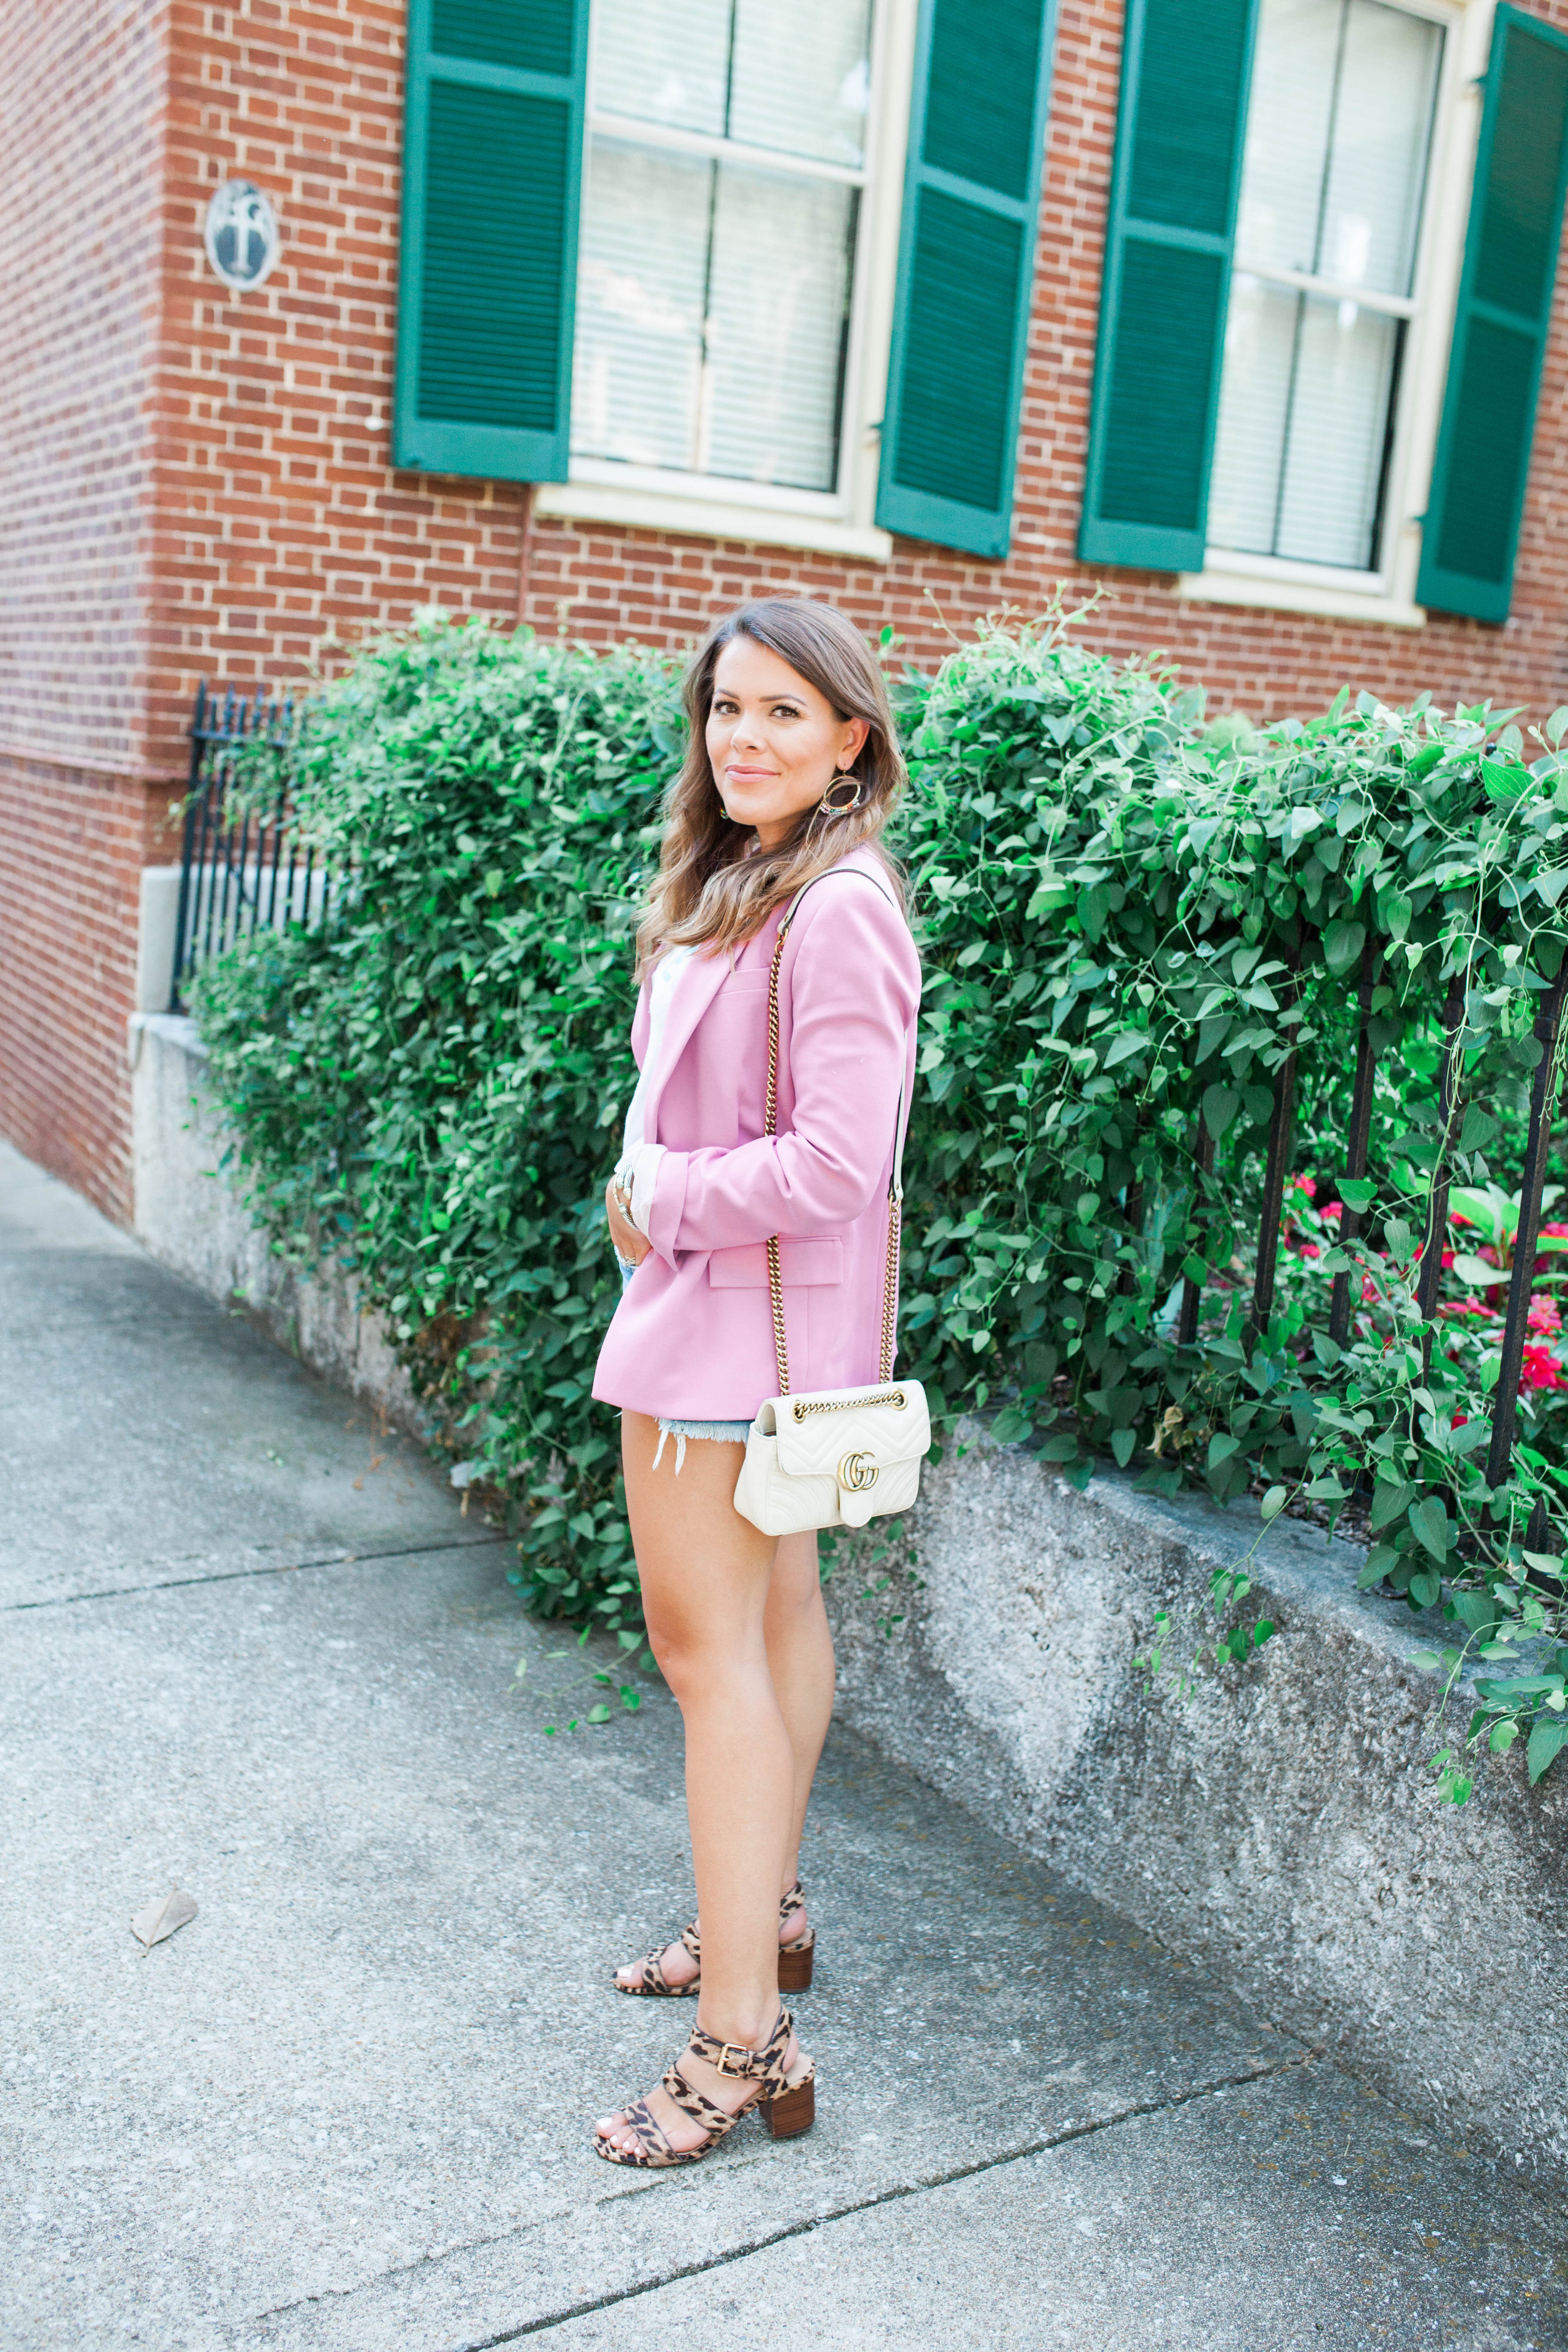 54b4e966c60644 How To Dress Down a Pink Blazer - Glitter & Gingham